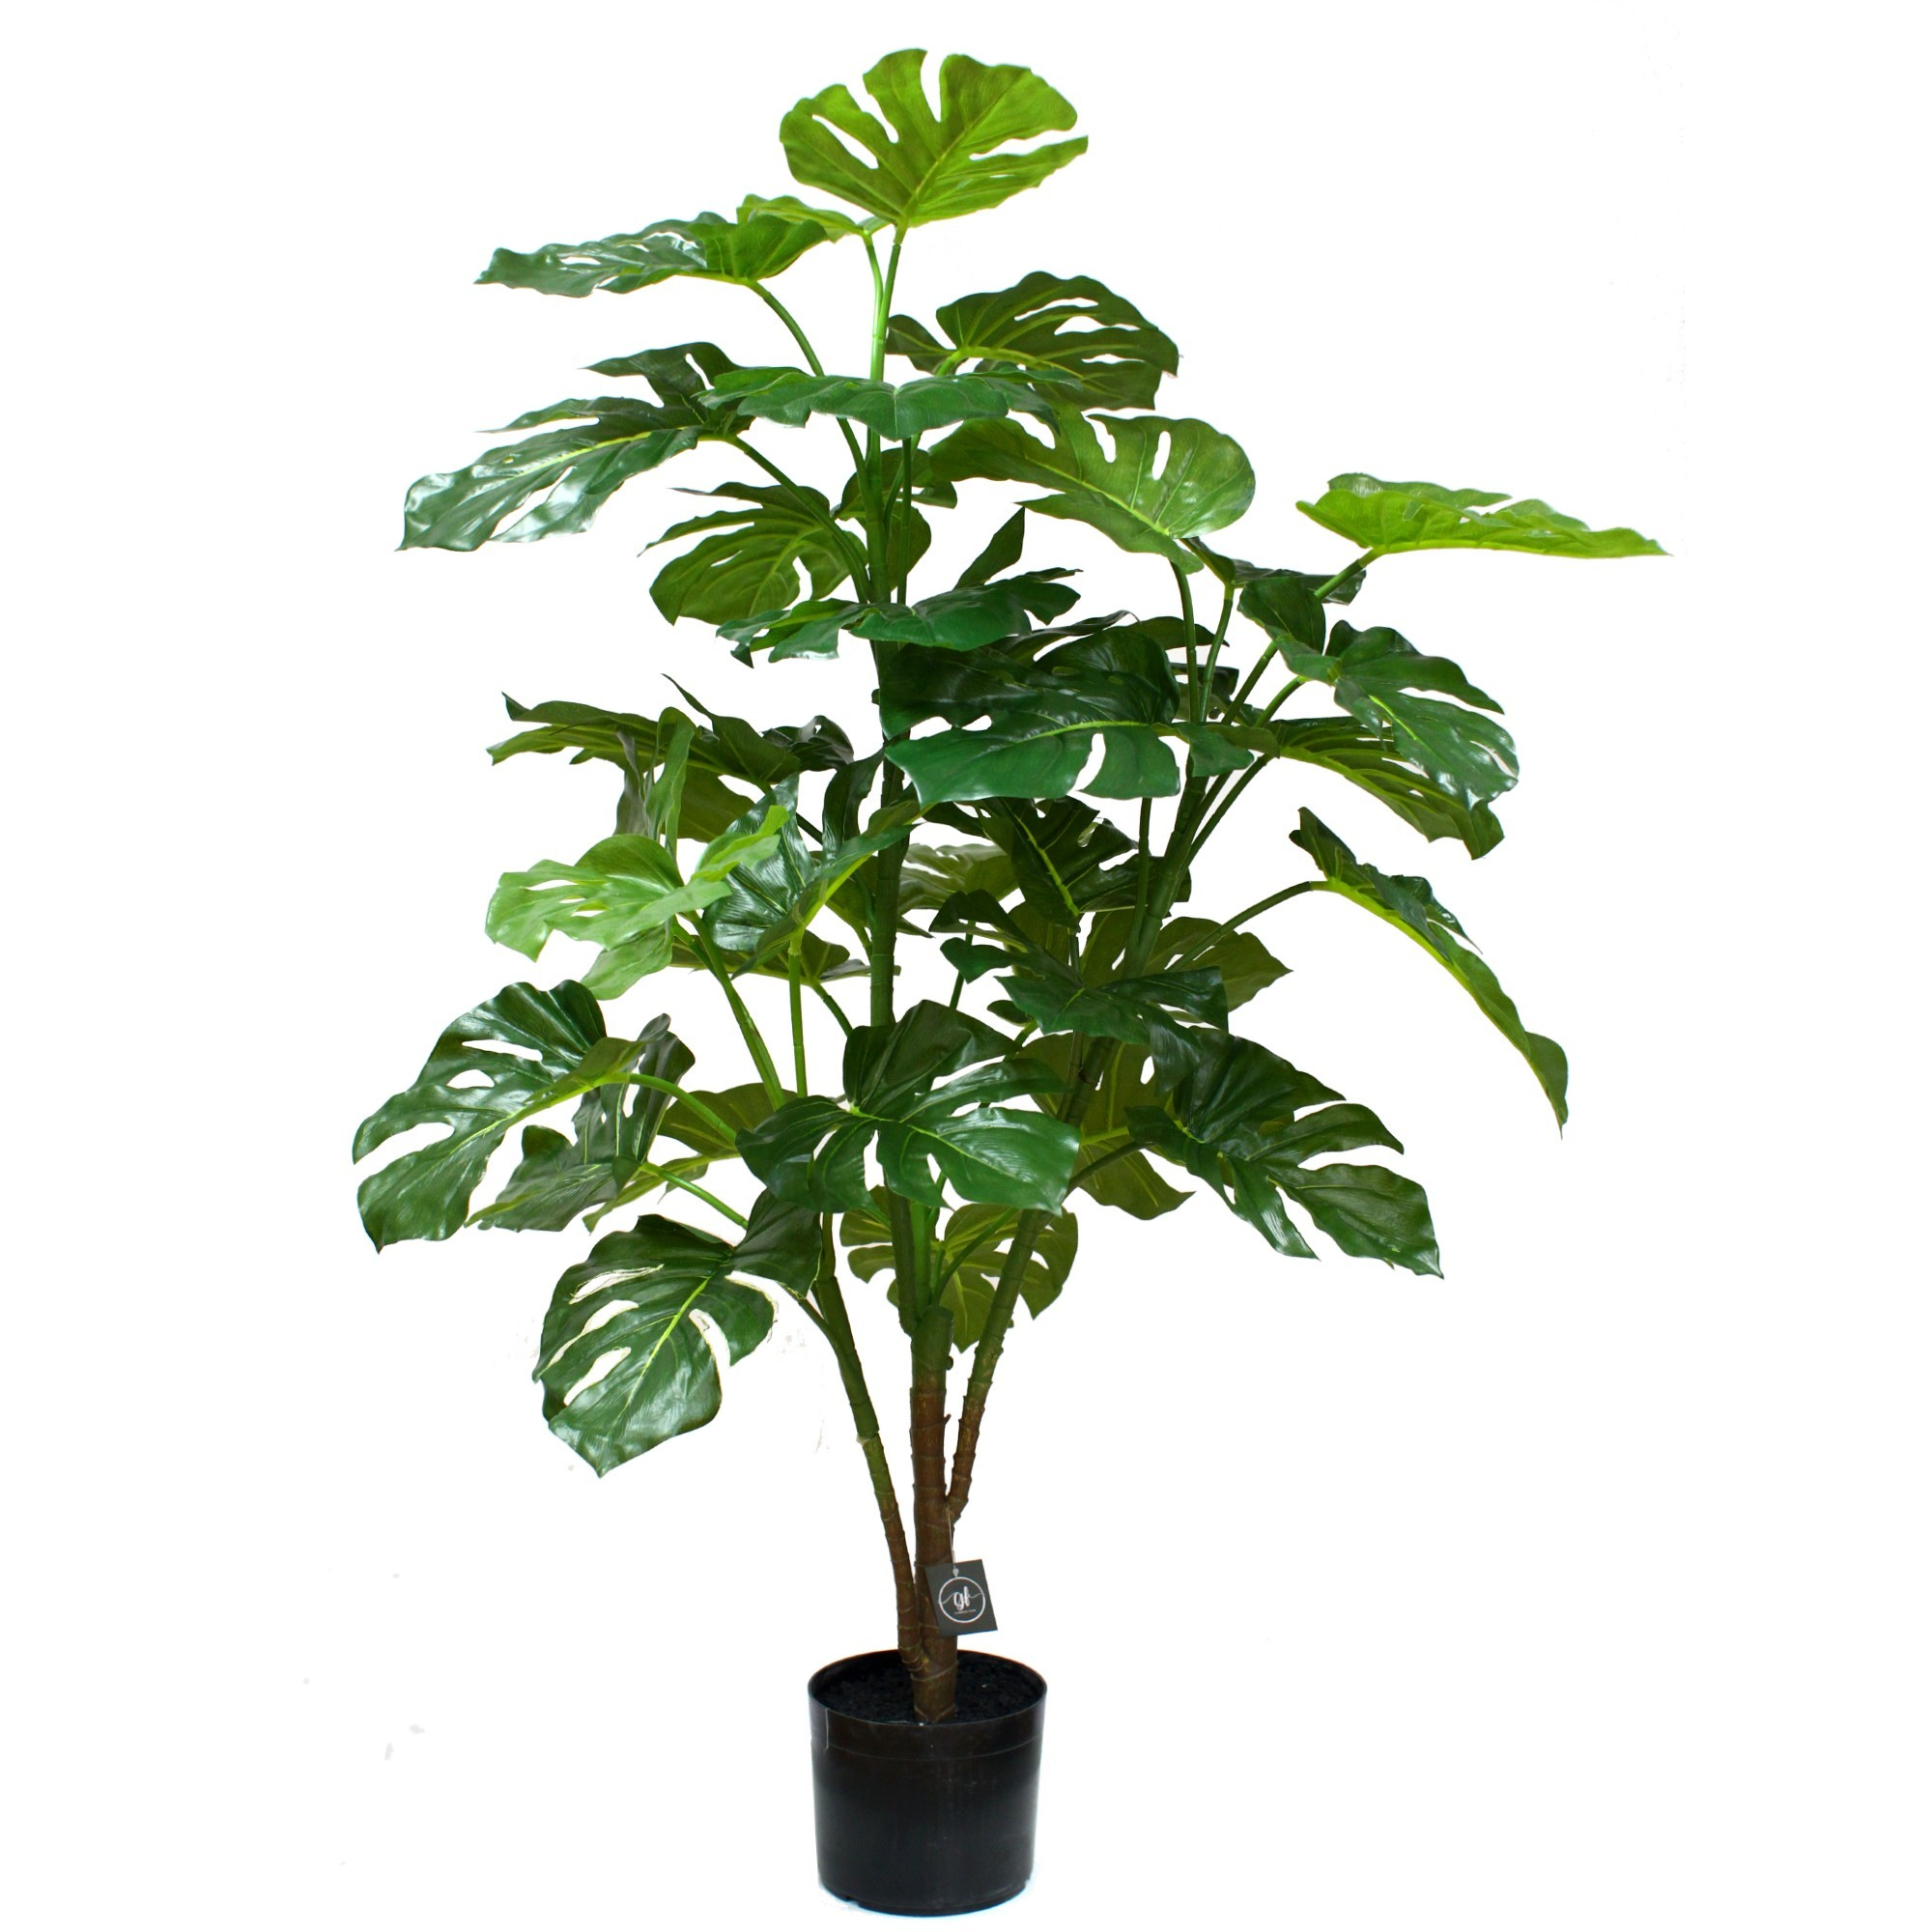 Glamorous Fusion Potted Artificial Split Leaf Philodendron, 127cm